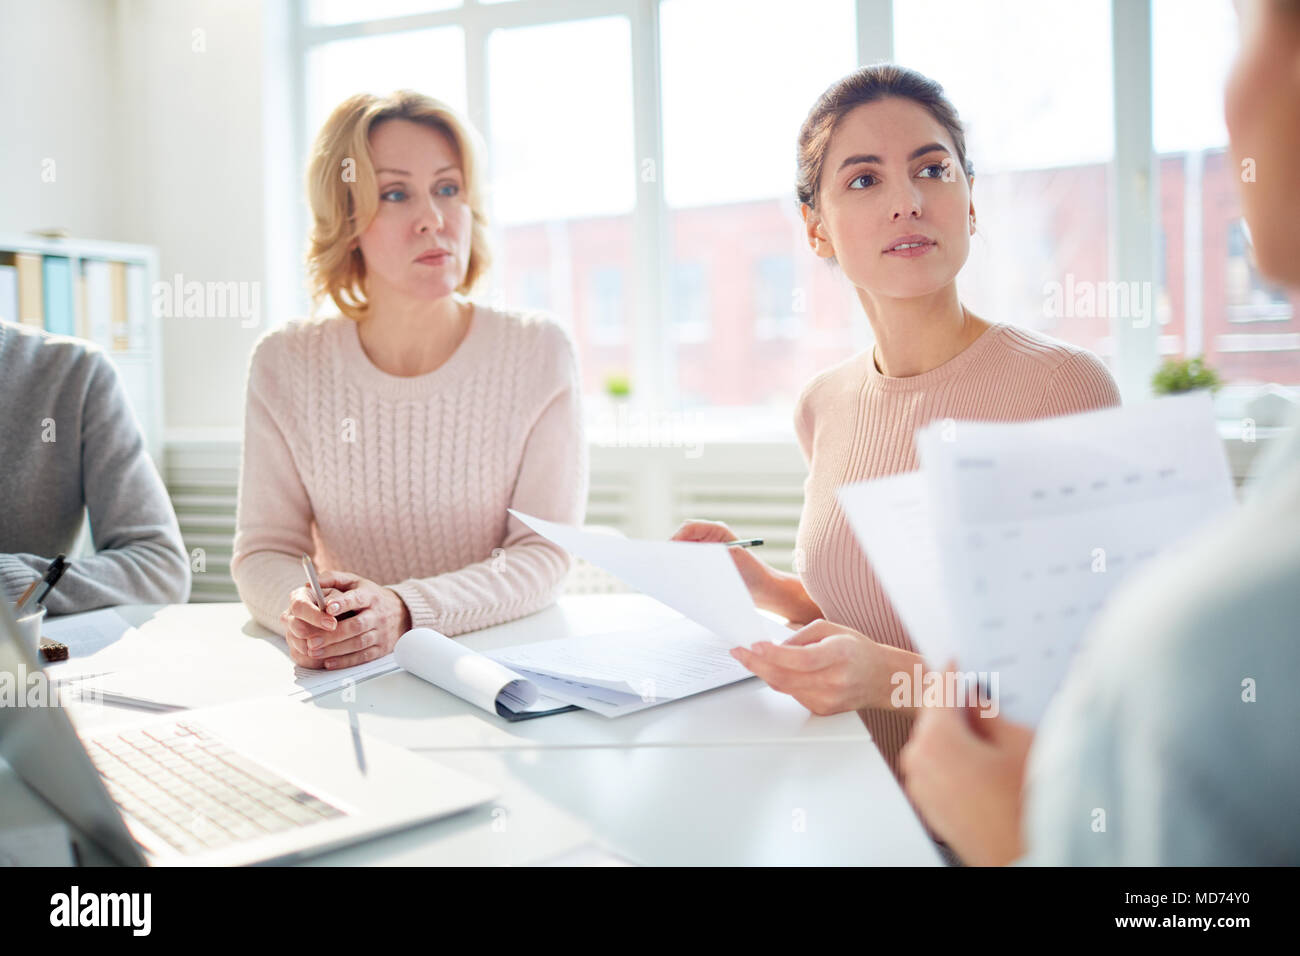 Working meeting at spacious open plan office: group of financial managers analyzing statistic data while sitting at table - Stock Image